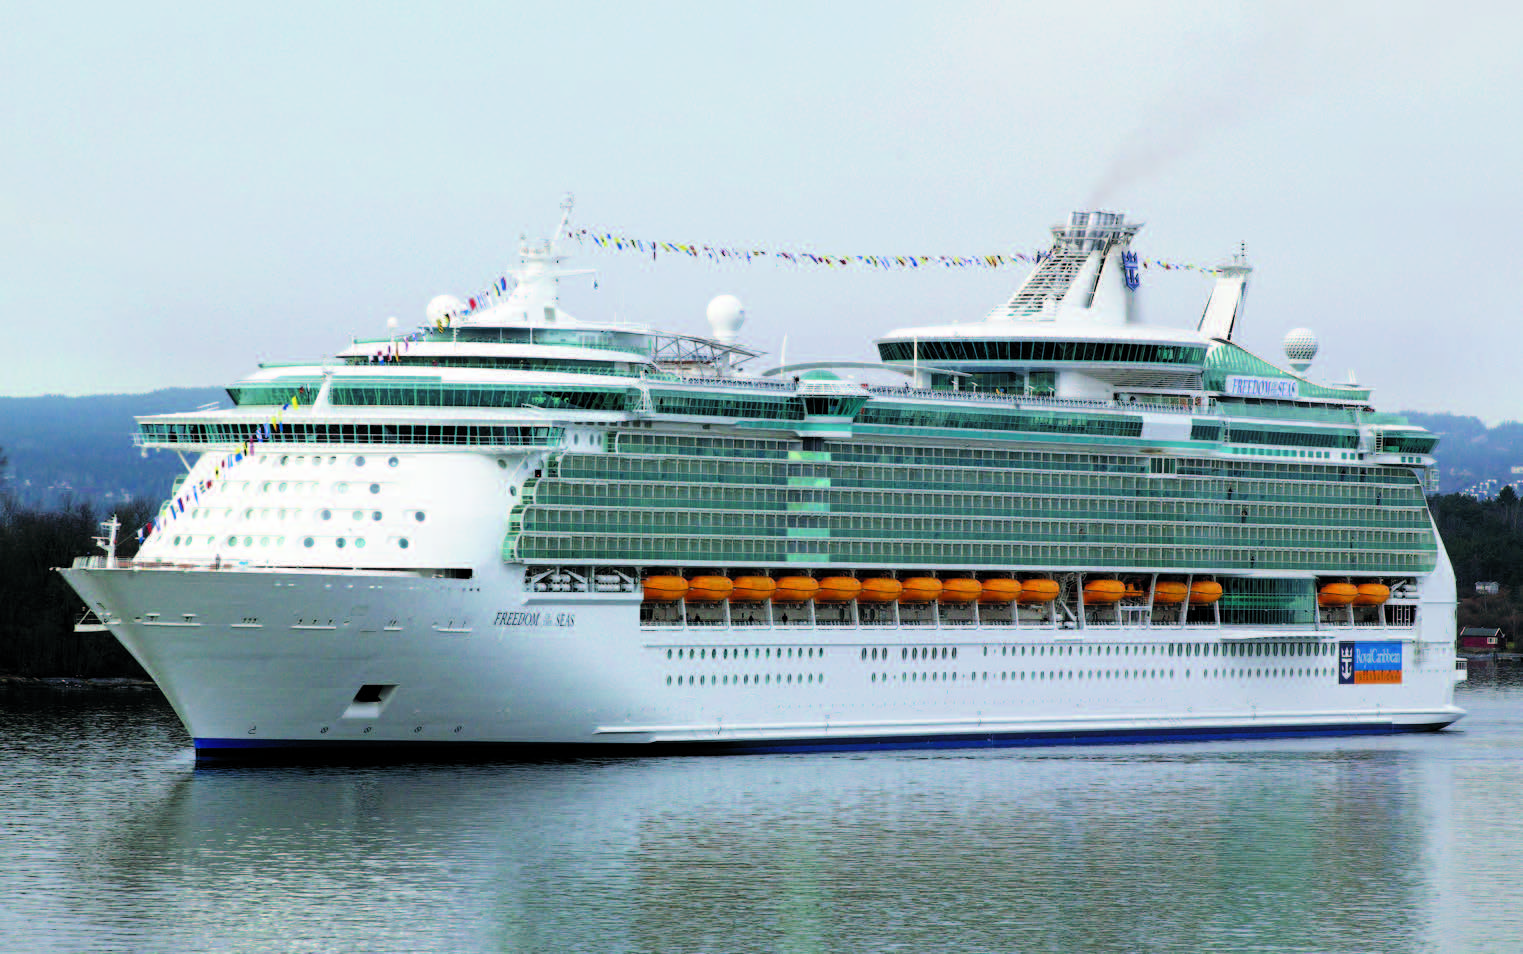 Cruise liner, cruise vessel